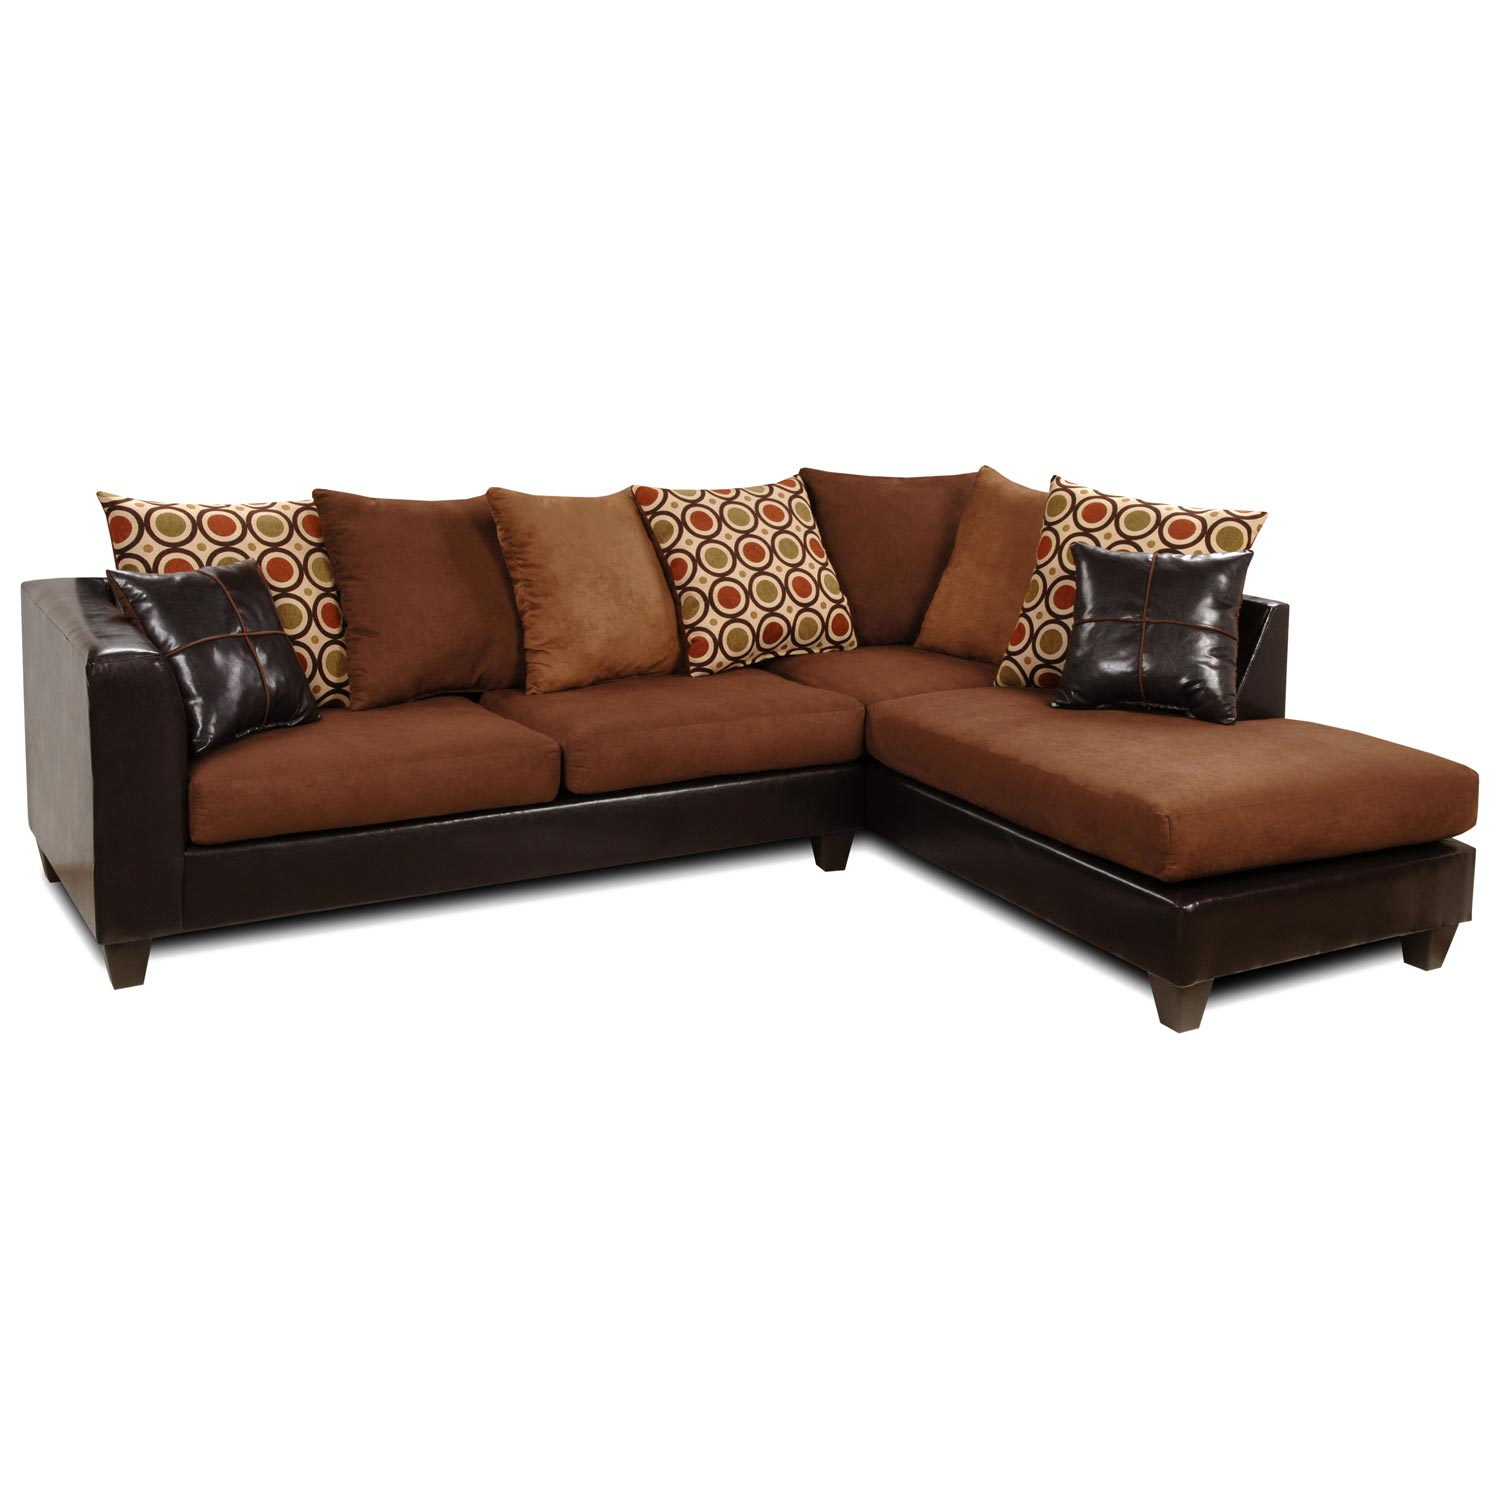 Ashley Chaise Sectional Sofa - Multicolored Pillows